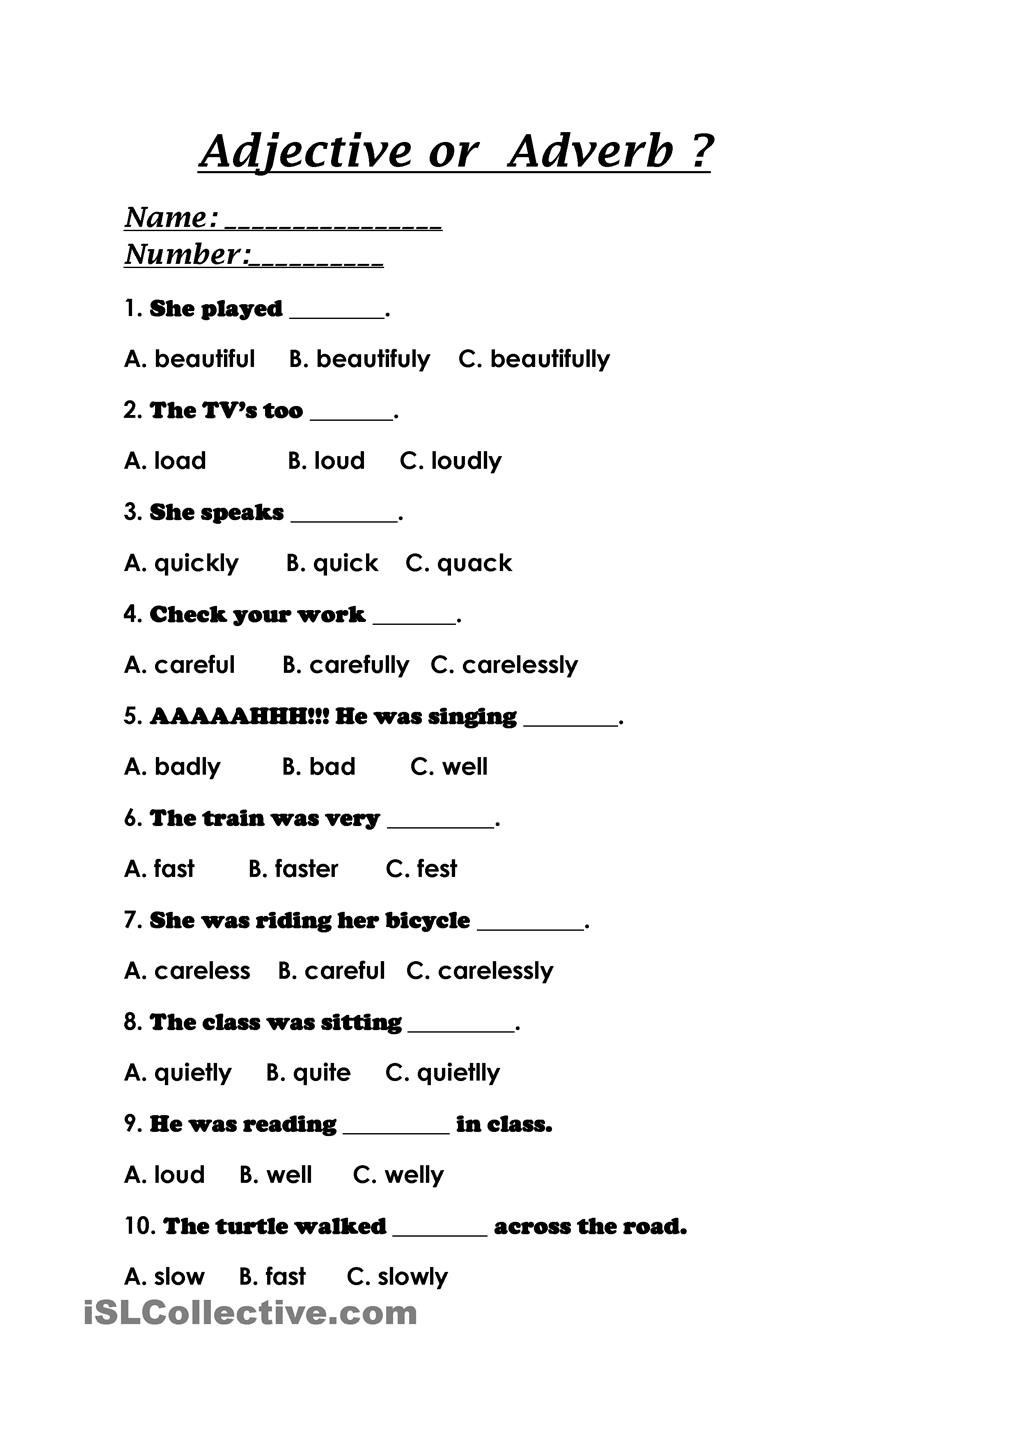 medium resolution of Adjective or Adverb?   Adverbs worksheet